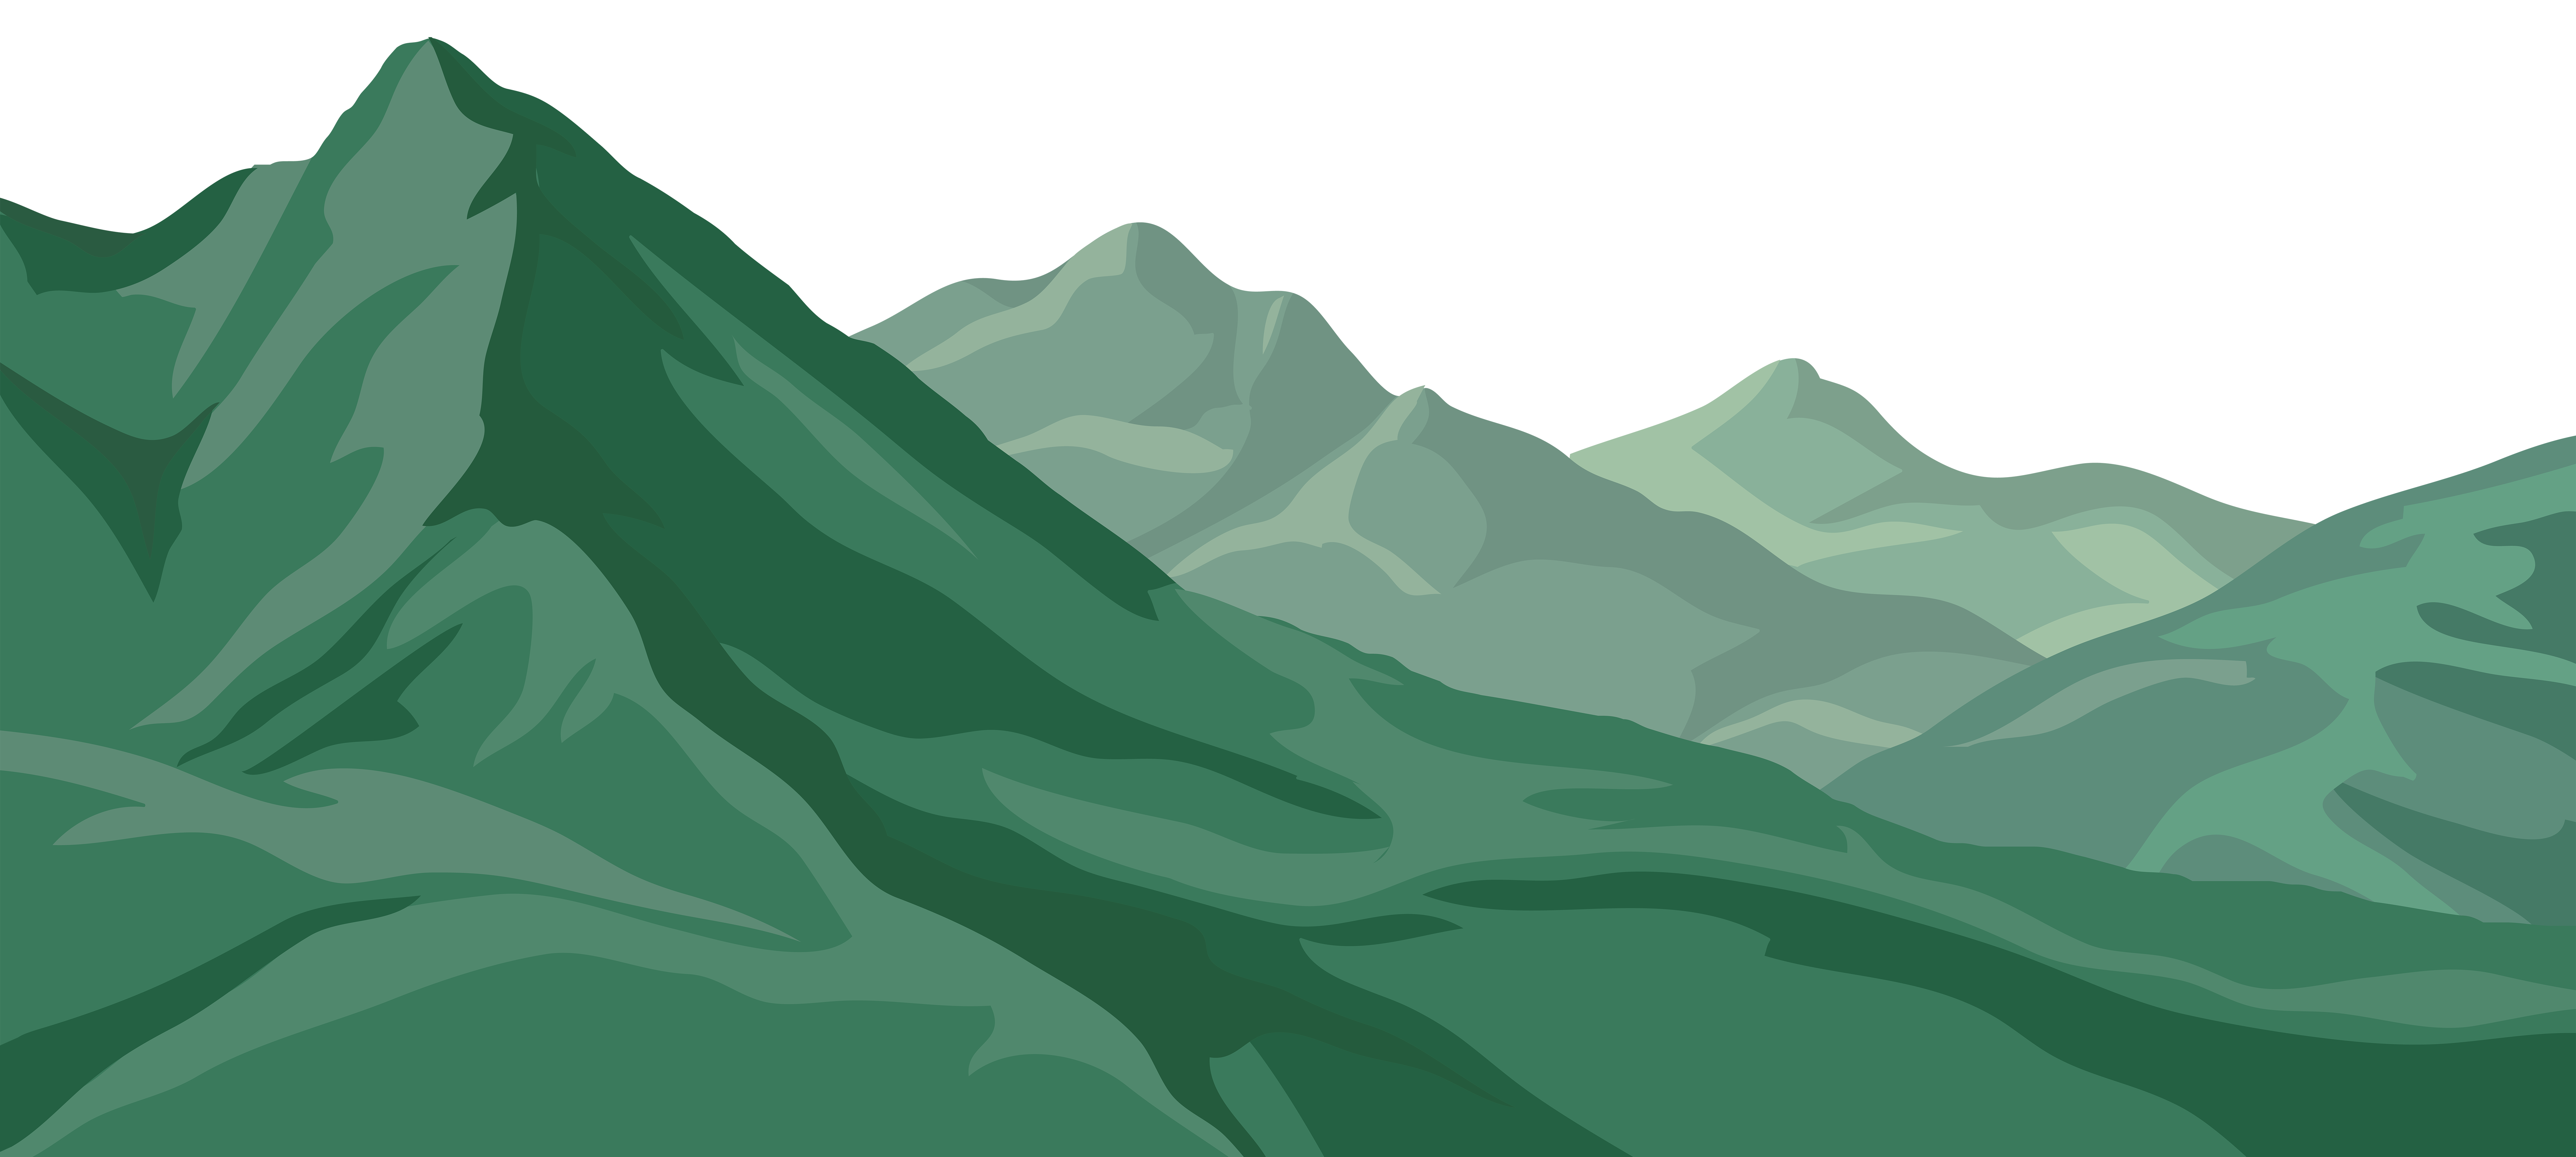 Mountain PNG Clip Art Image.